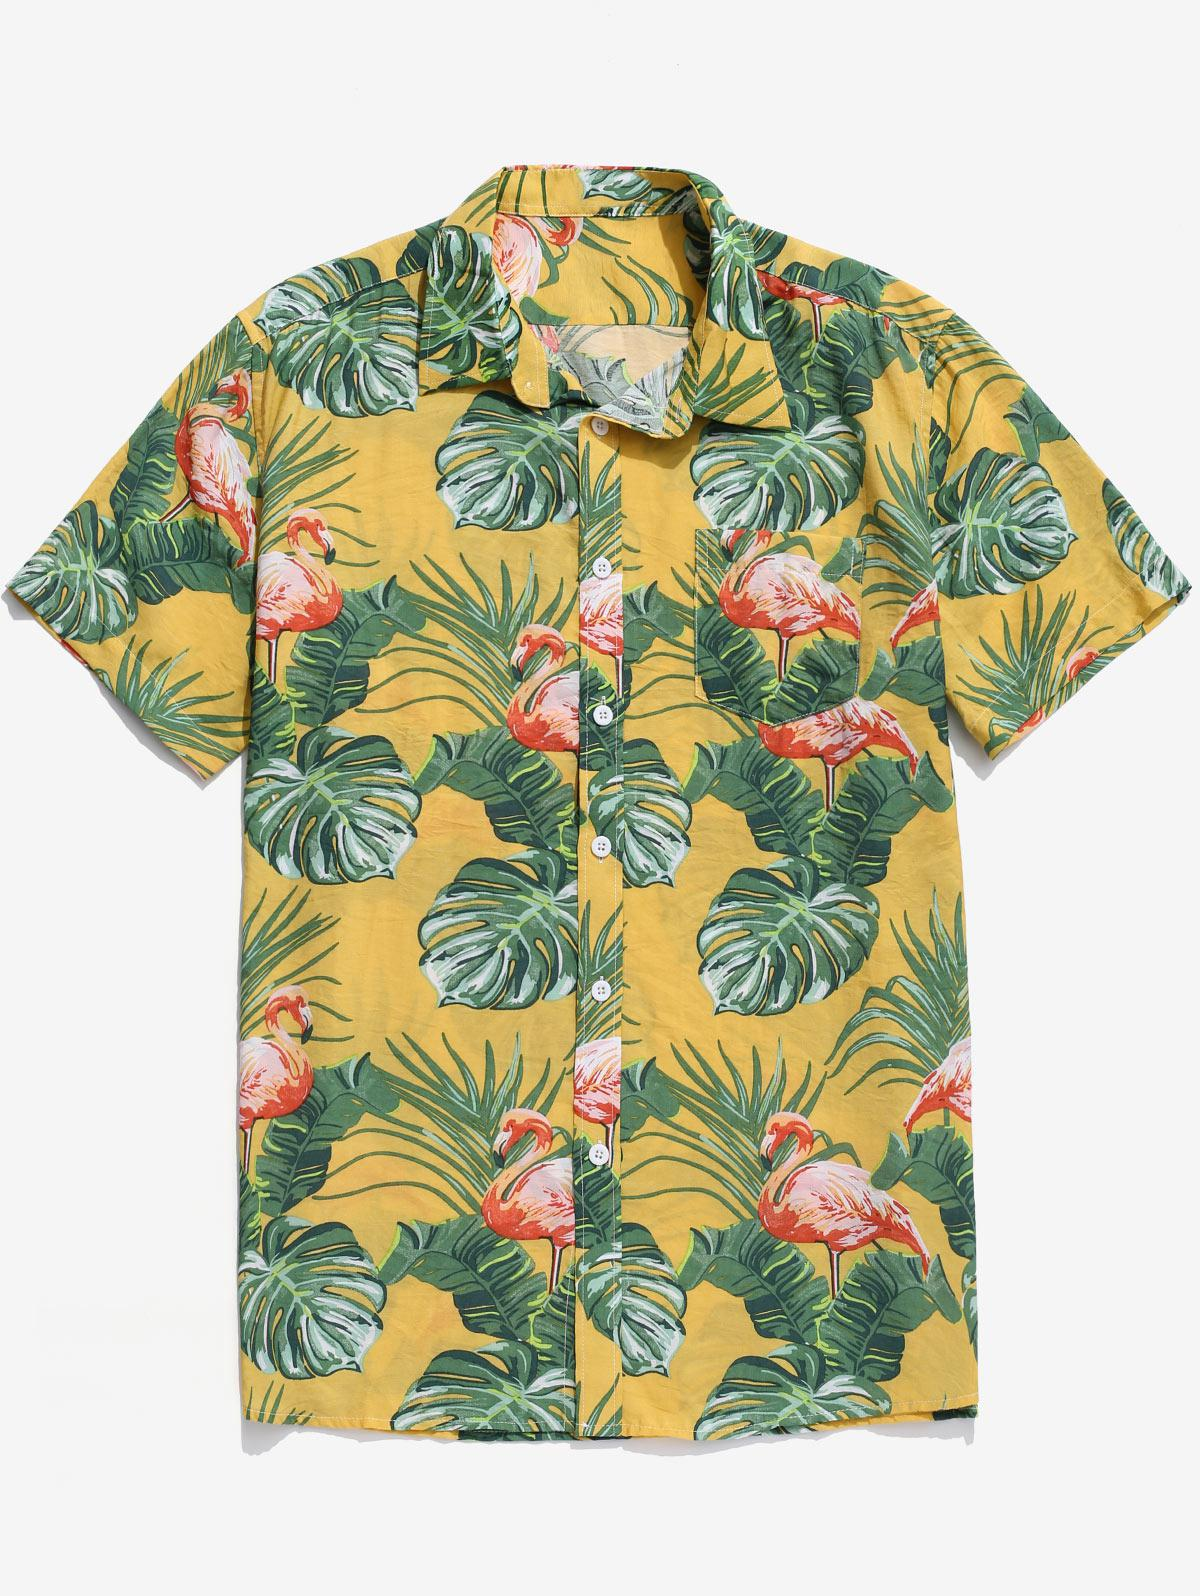 Tropical Leaf Flamingo Print Beach Hawaii Shirt, Multi